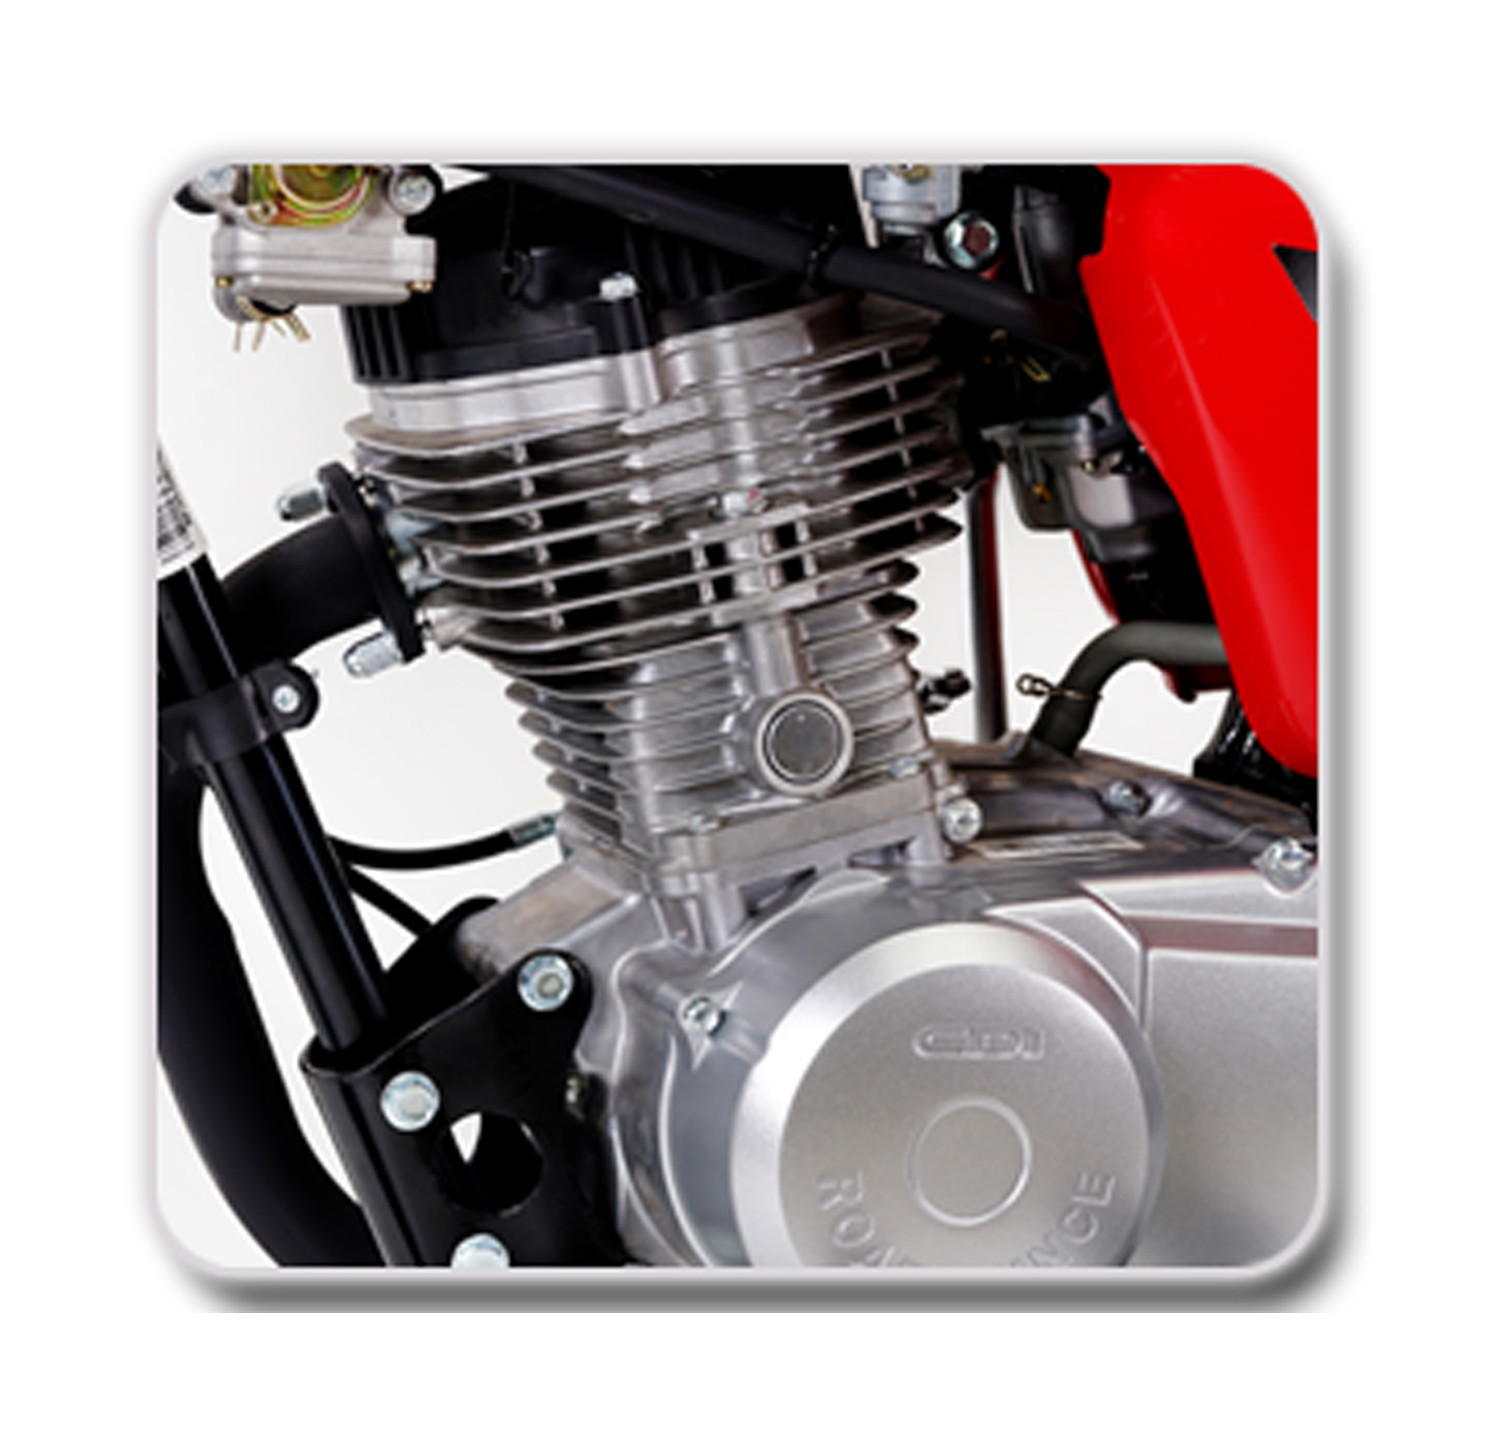 OHV Euro II Powerful Engine with Japanese Technology